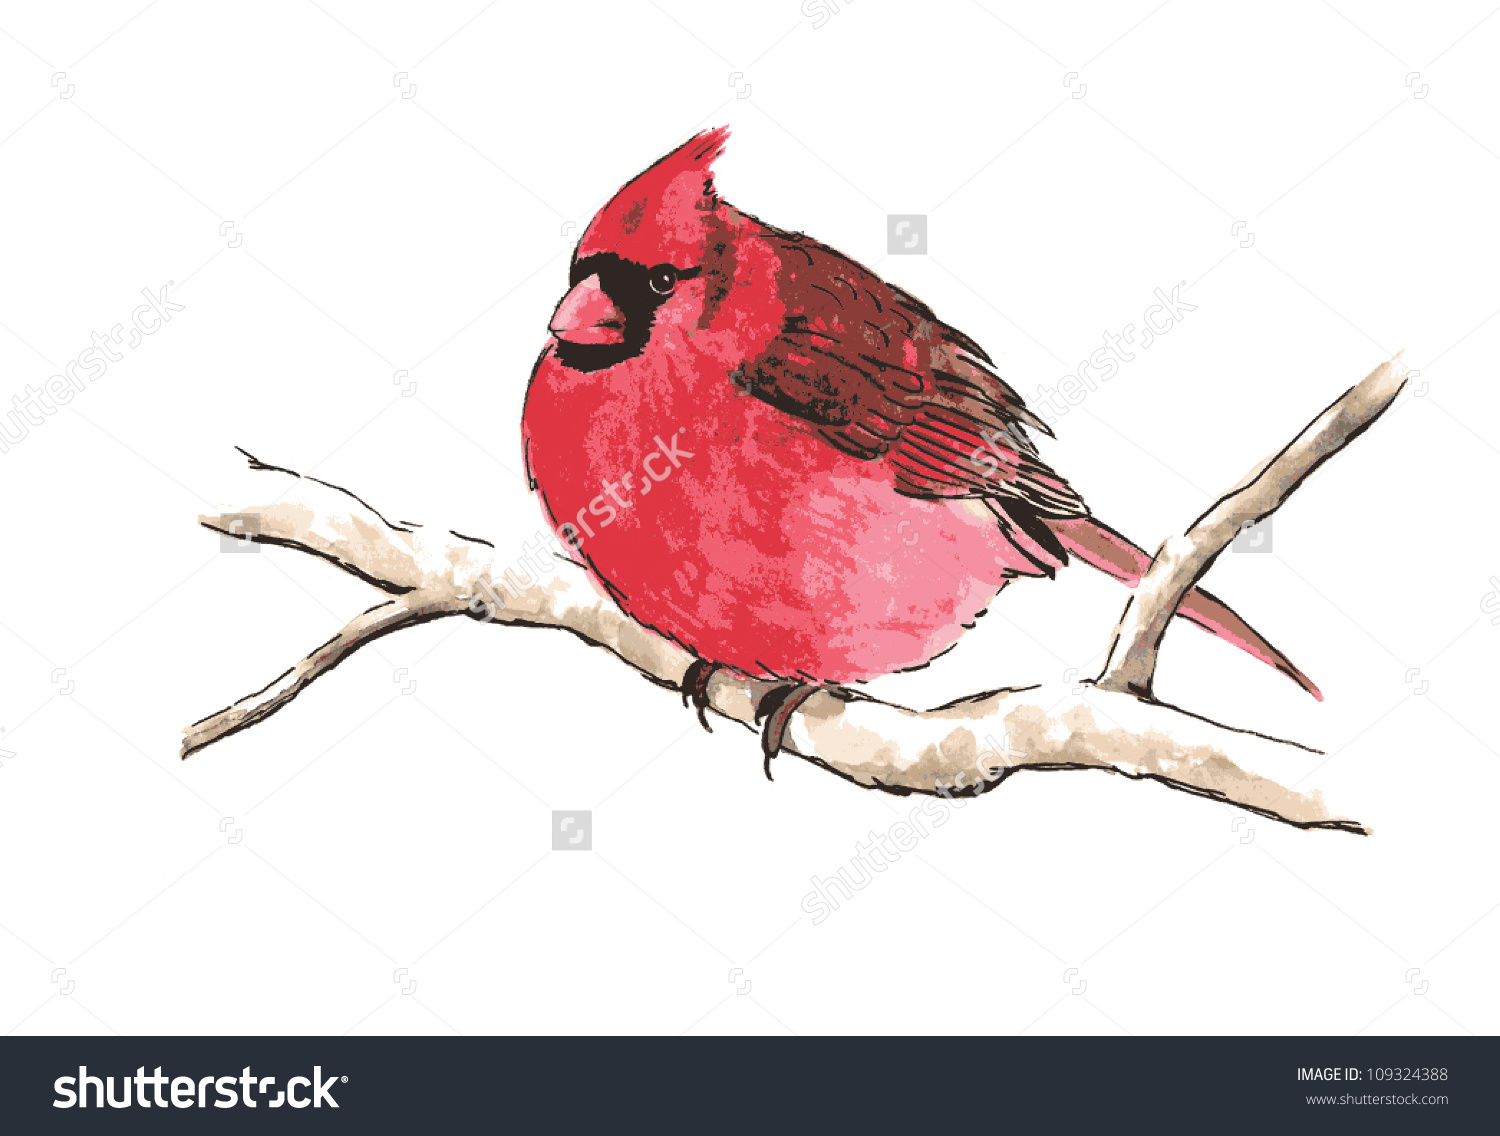 Red-masked Finch clipart #8, Download drawings